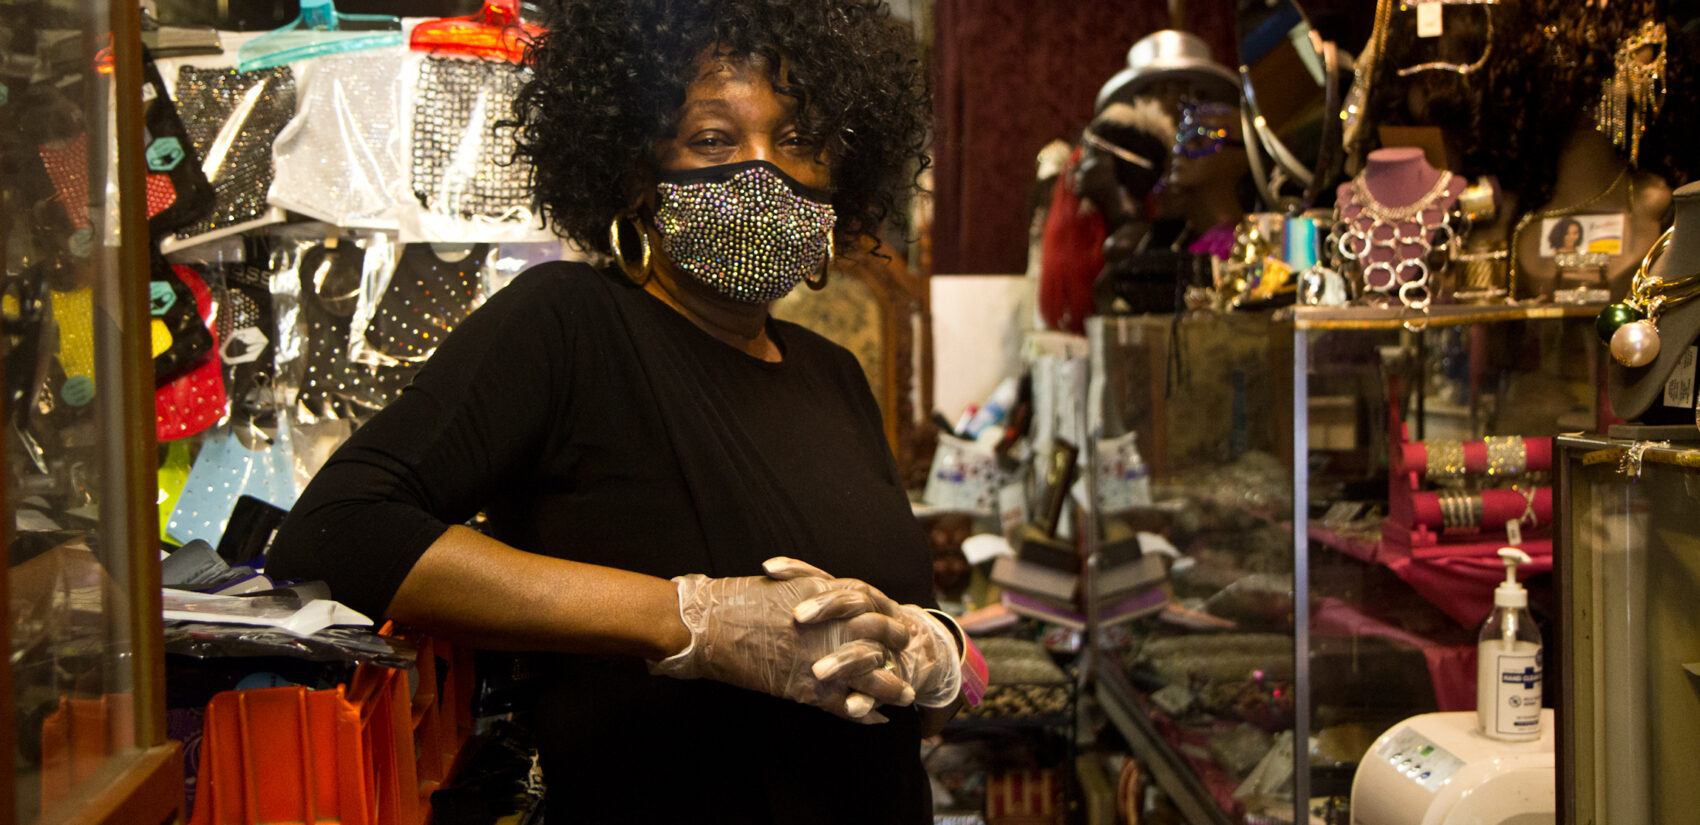 Gwendolyn Hosey is the owner of Struttin' Lightly, an accessory store on 52nd Street in West Philadelphia. (Kimberly Paynter/WHYY)